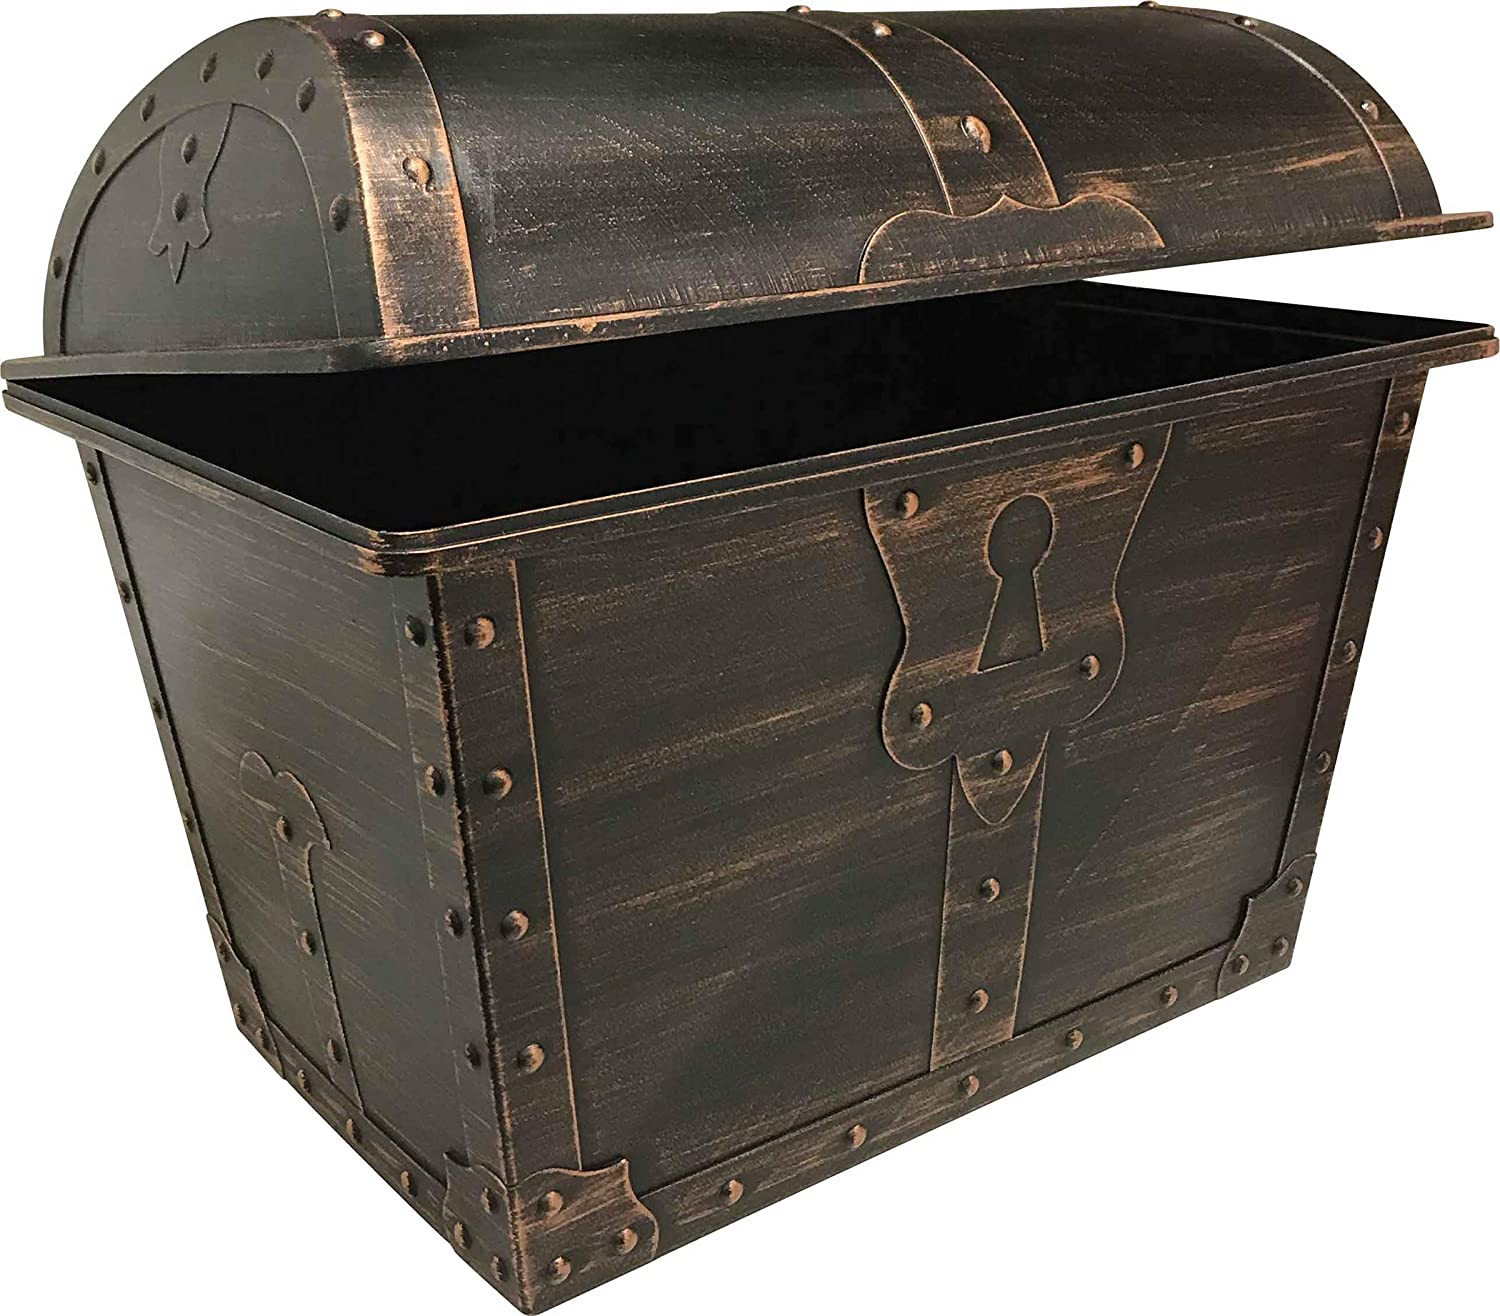 Teacher Created Resources Large Plastic Treasure Chest Classroom Rewards Pirate Party Goody Box, Model:TCR8759